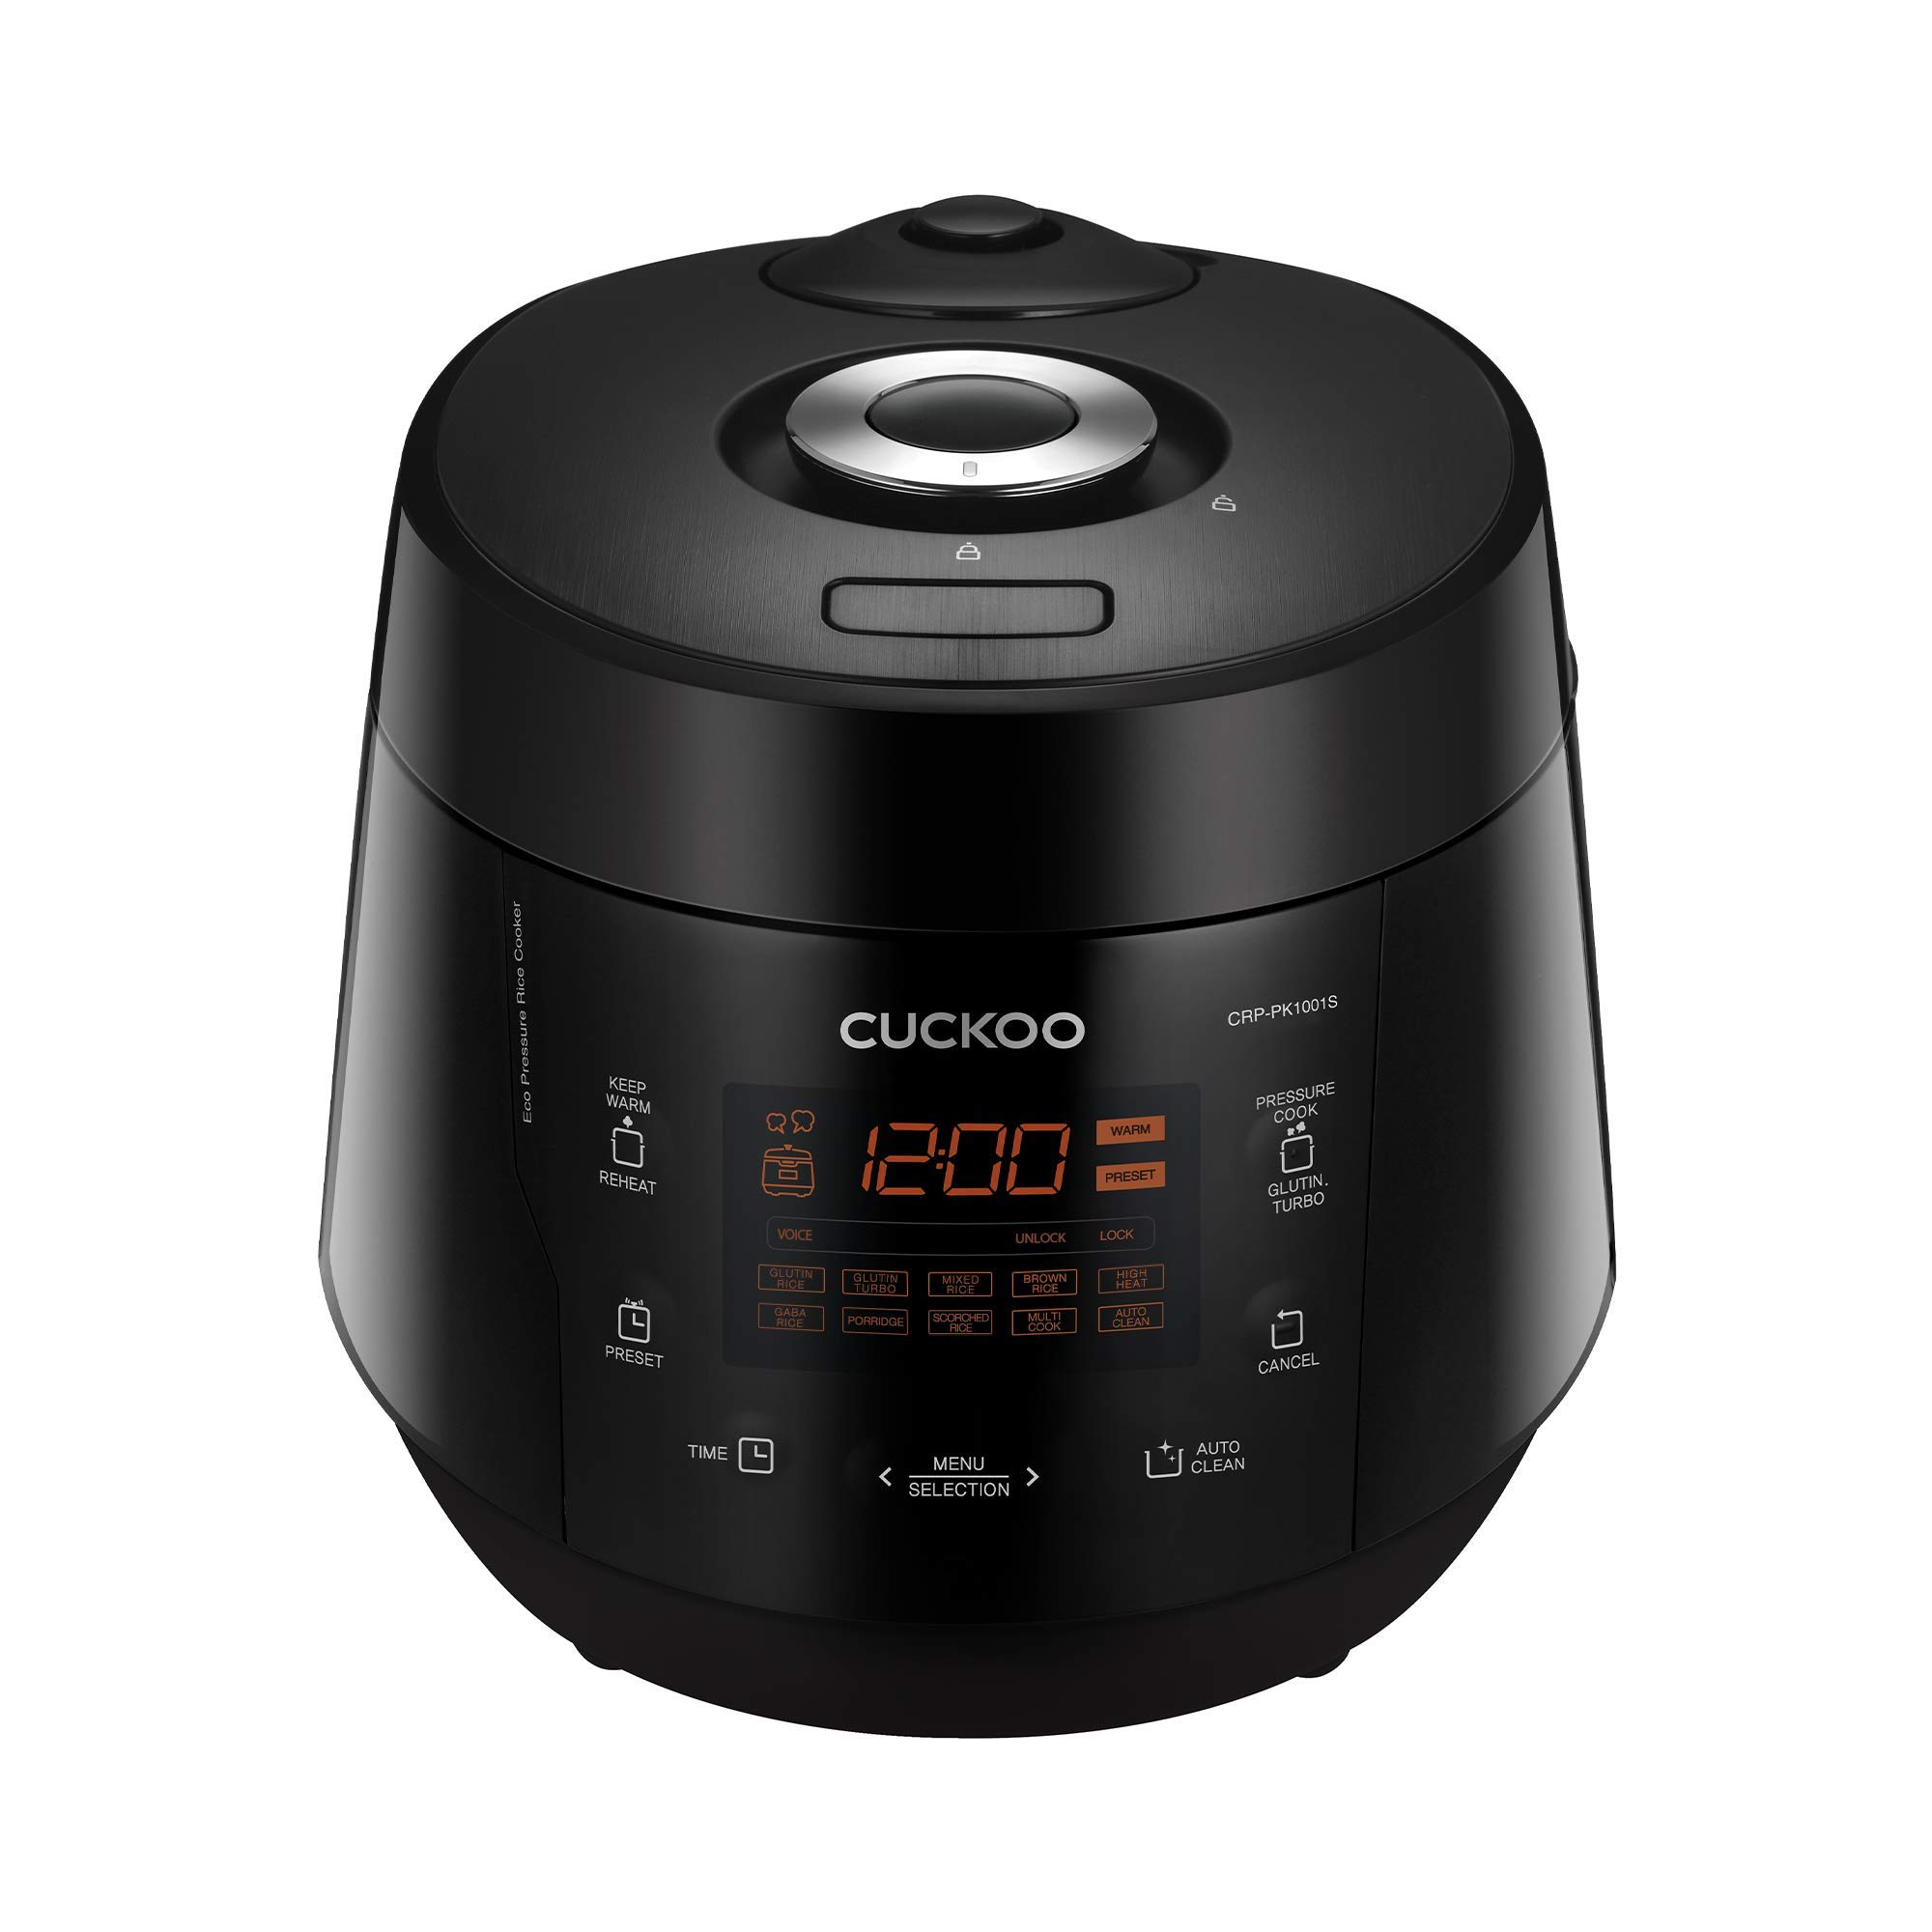 Cuckoo CRP-PK1001S Multifunctional & Programmable Electric Pressure Rice Cooker, Non-Stick Pot, Intelligent Cooking Algorithm, Made in Korea, 10 Cups, Black